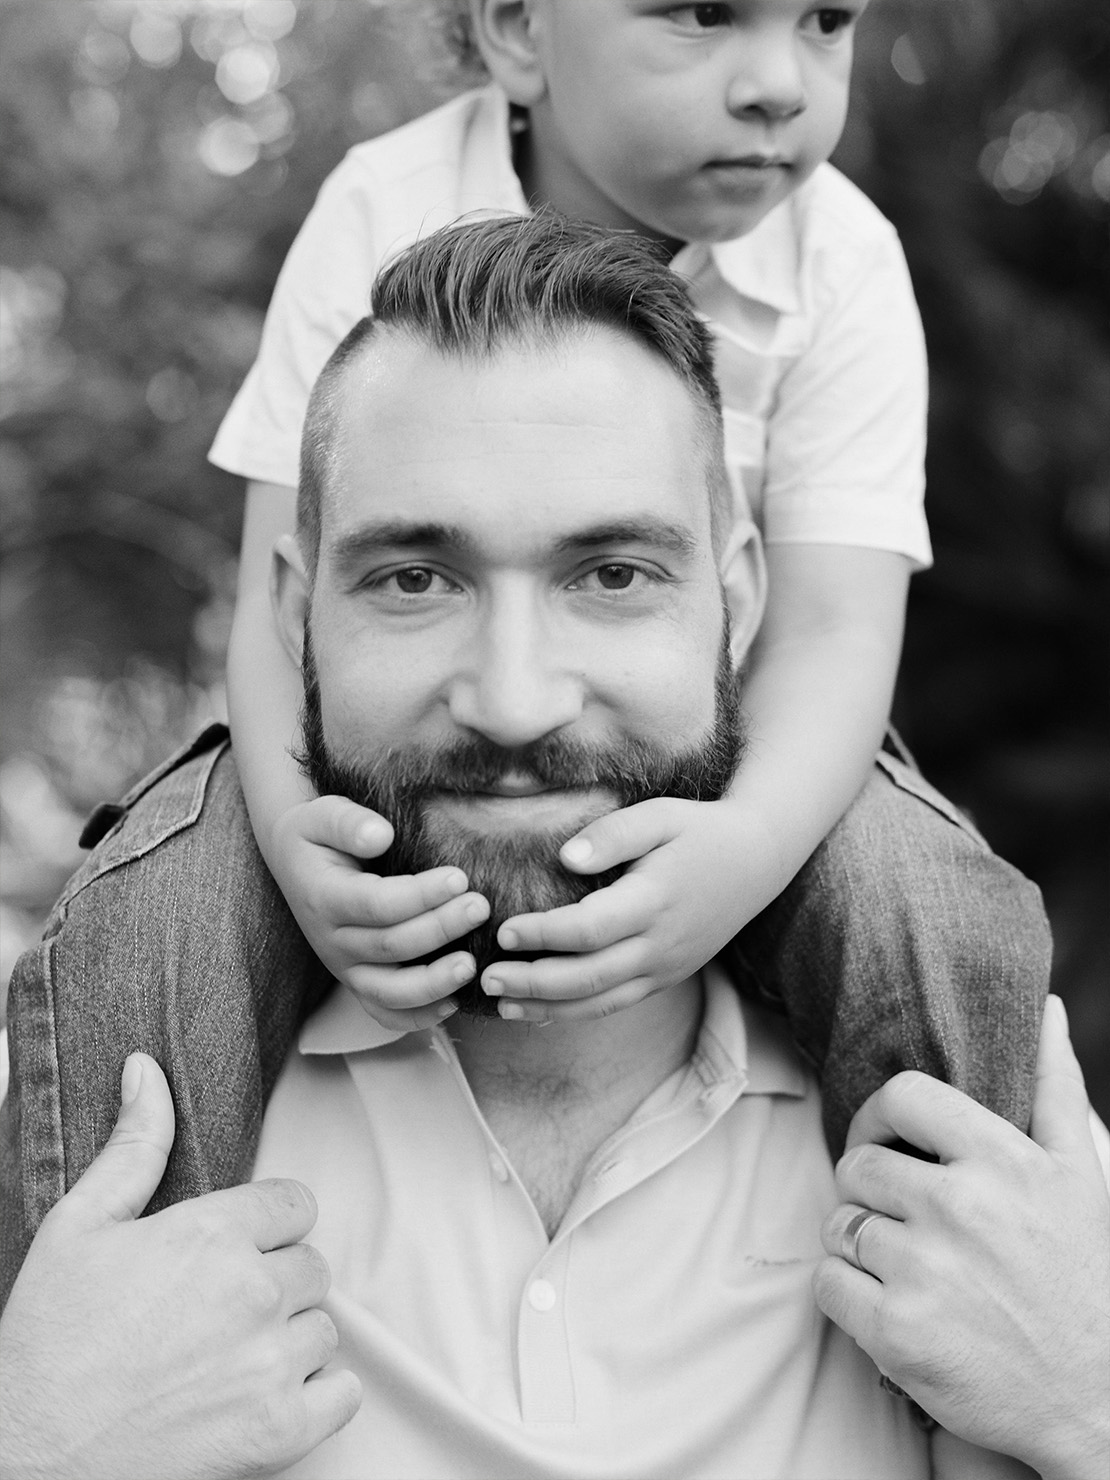 Heidi Vail Photography | Winter Park Florida Family Portrait Session at Mead Botanical Garden | Fine Art Family Photographer | Based in Orlando, Florida | Fatherhood